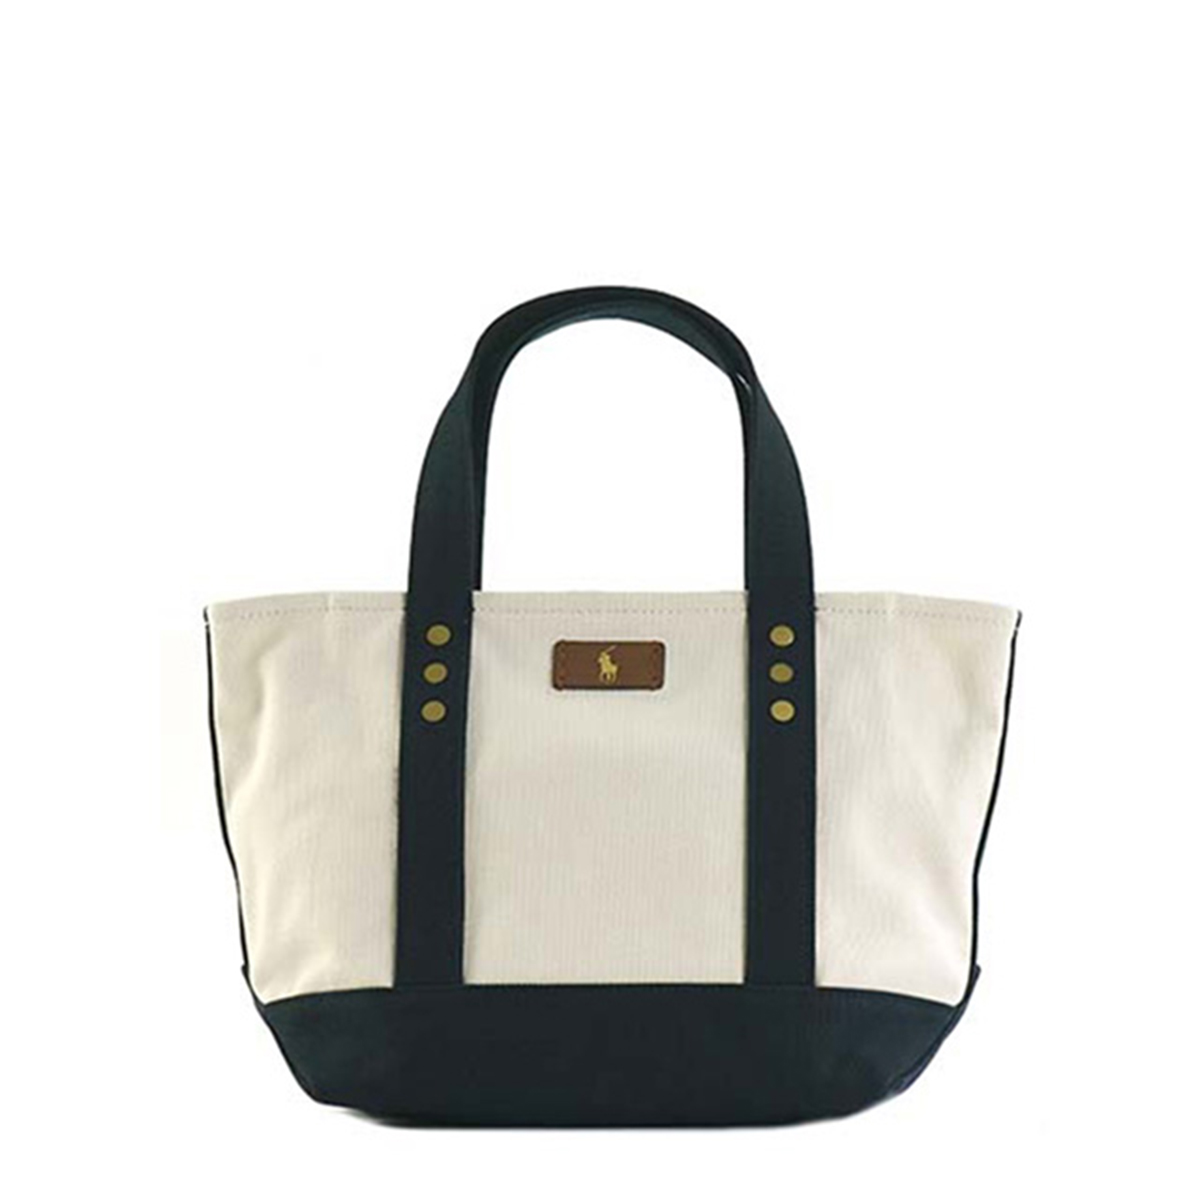 Polo Ralph Lauren Polo Ralph Lauren handbag tote bag shoulder bag Lady s  men canvas purse shoulder back tote bag natural beige navy dark blue Lady s  ... b19410bbab005